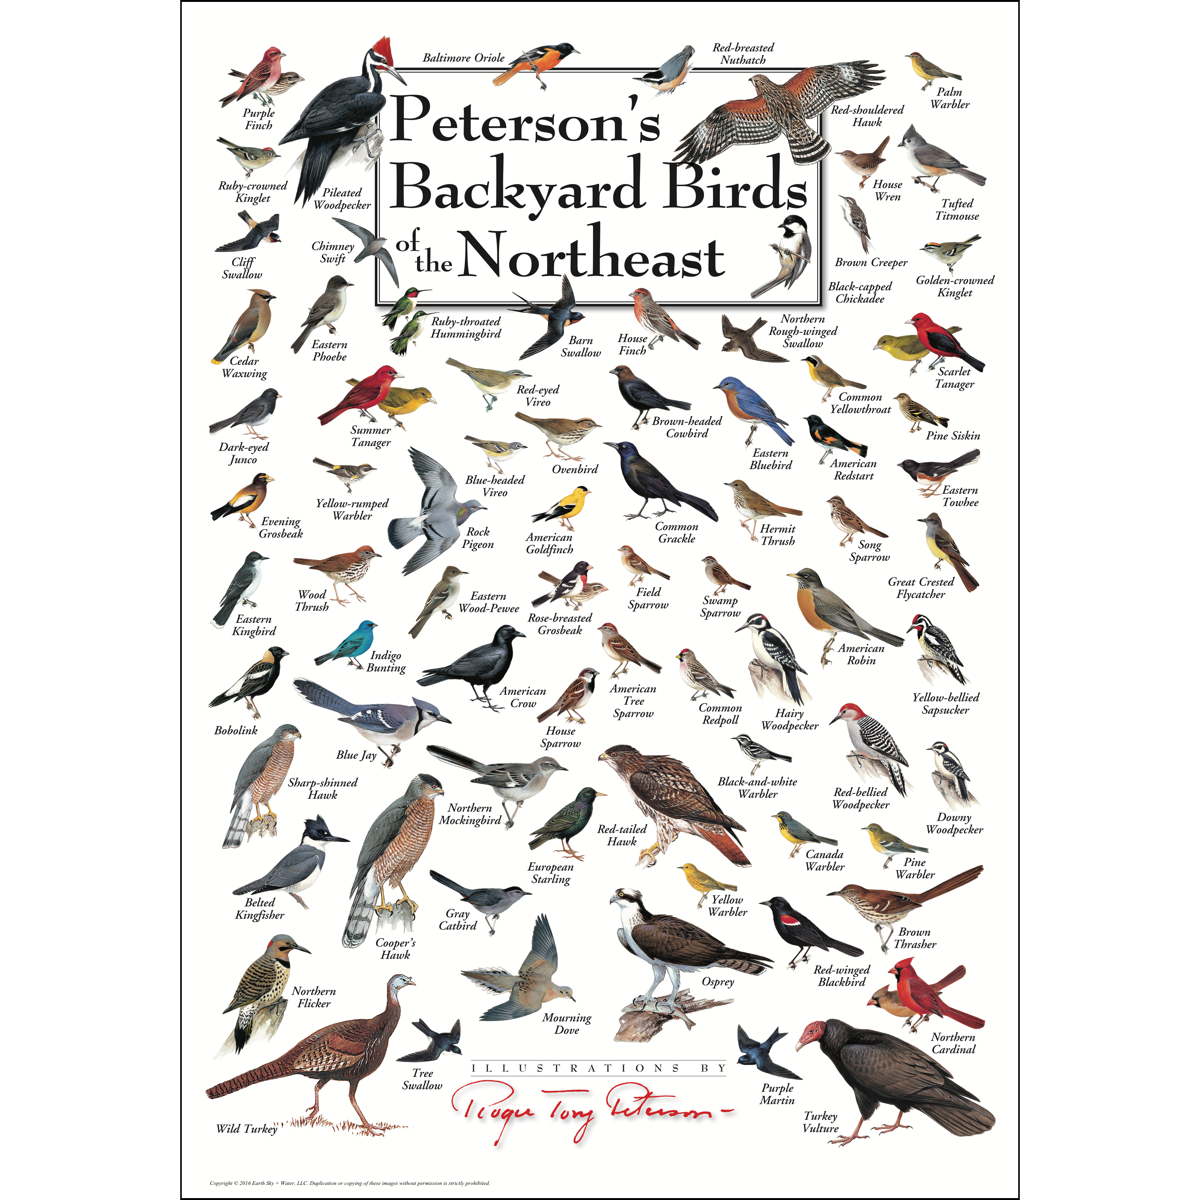 Peterson's Backyard Birds of the Northeast - Poster ...